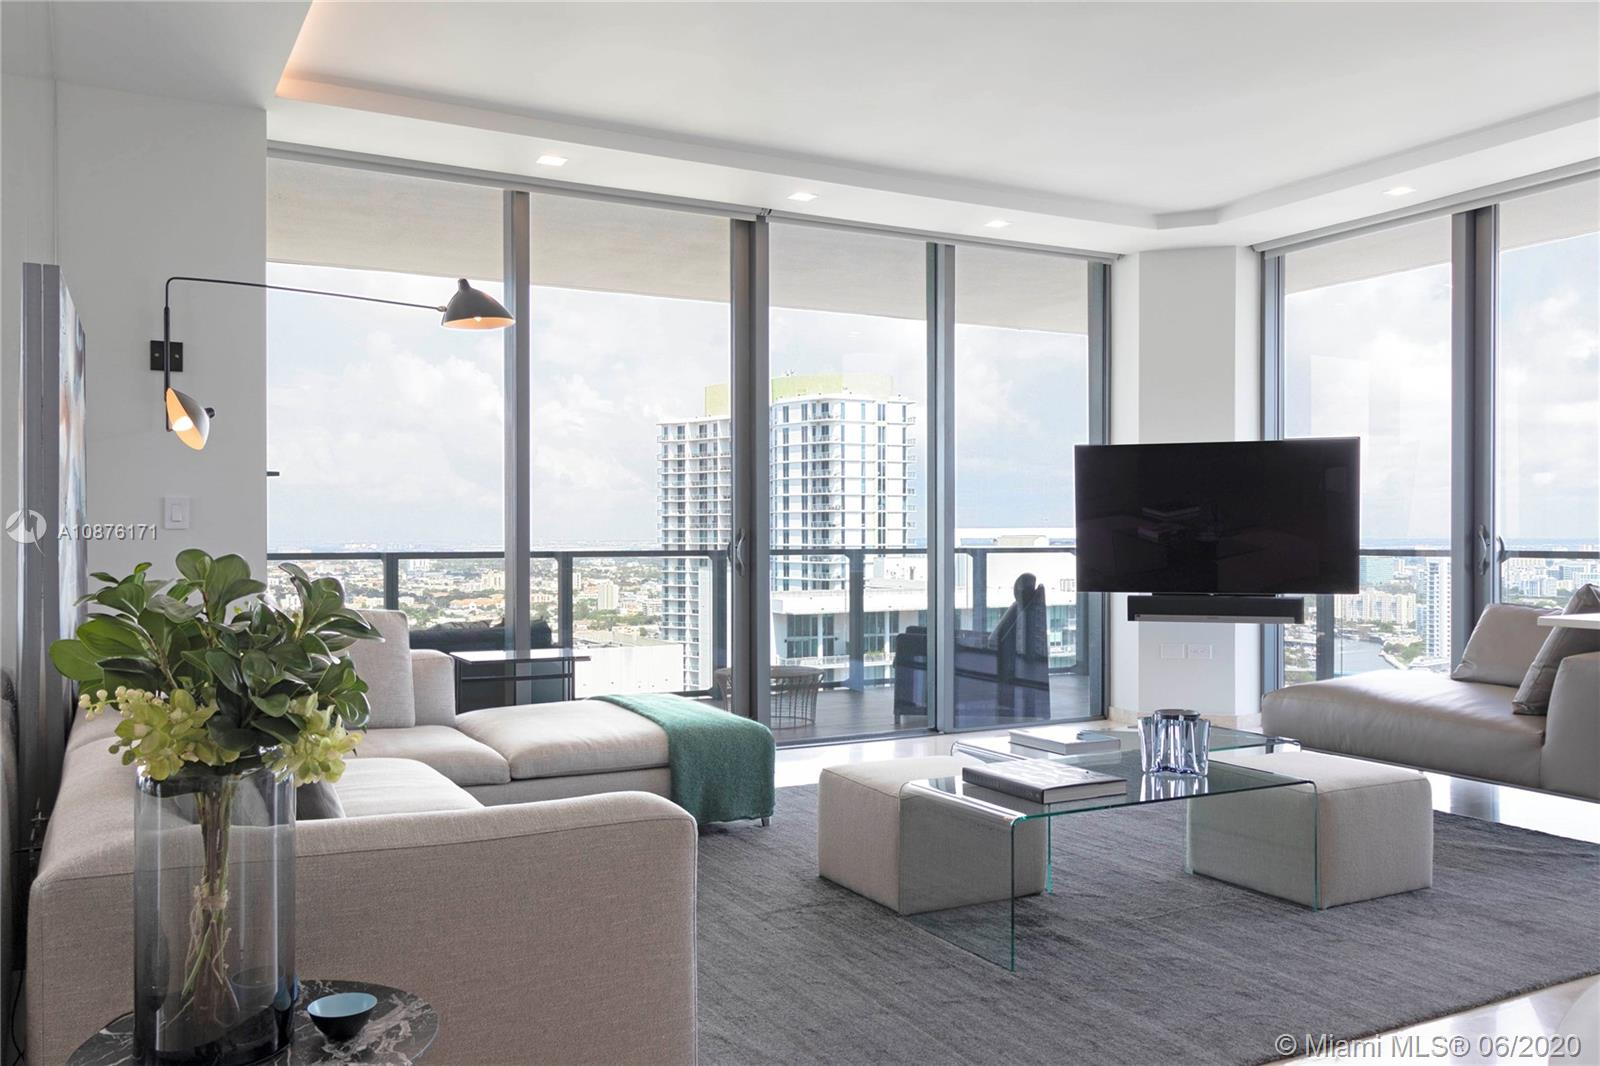 High floor, Rise corner unit with expansive wrap around balconies. Interior Design by Nar Design Studio with a unique remodeled layout including enlarged living room, upgraded frameless doors, closets, custom lighting design, integrated smart home system with Ipad/smart phone and voice control for electric shades, A/C, Sound system and lighting. This is one of the few corner line units with expansive wrap around balconies. One acre of lush tropical gardens with meditating area, BBQ grill, children's play area, heated pool/spa, spacious state of the art fitness center with individual studios and machine rooms. Hammam spa, dipping pools, showers and steam rooms. Entertaining suite elegantly furnished chef-worthy kitchen, dining, living room, theatre room and much more.